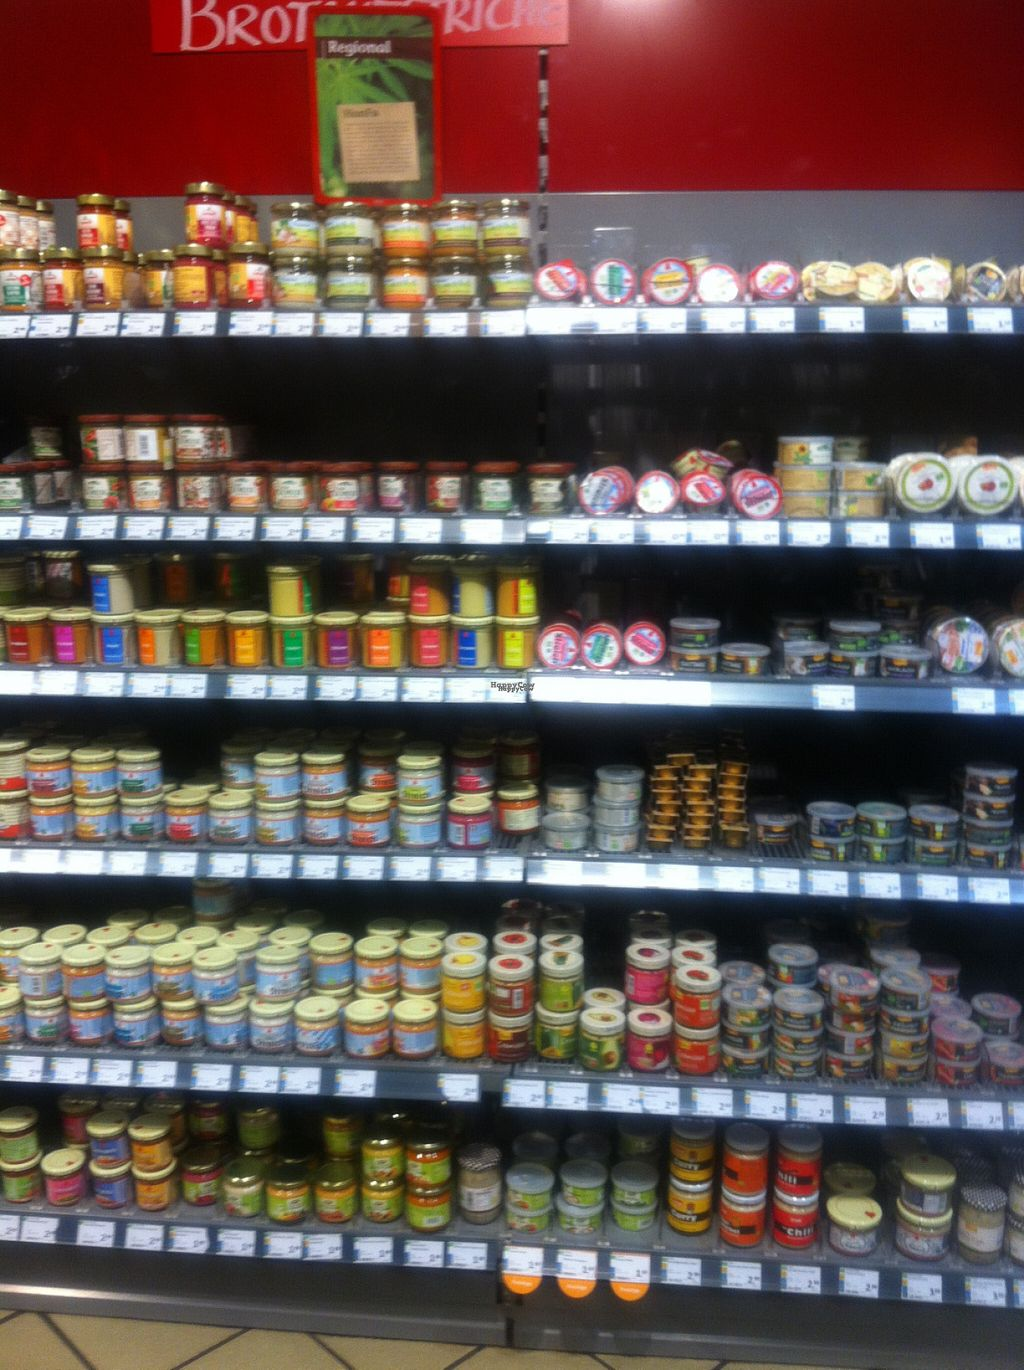 """Photo of denn's Biomarkt - Mitte  by <a href=""""/members/profile/piffelina"""">piffelina</a> <br/>Huge vegan selection <br/> August 2, 2016  - <a href='/contact/abuse/image/8980/164707'>Report</a>"""